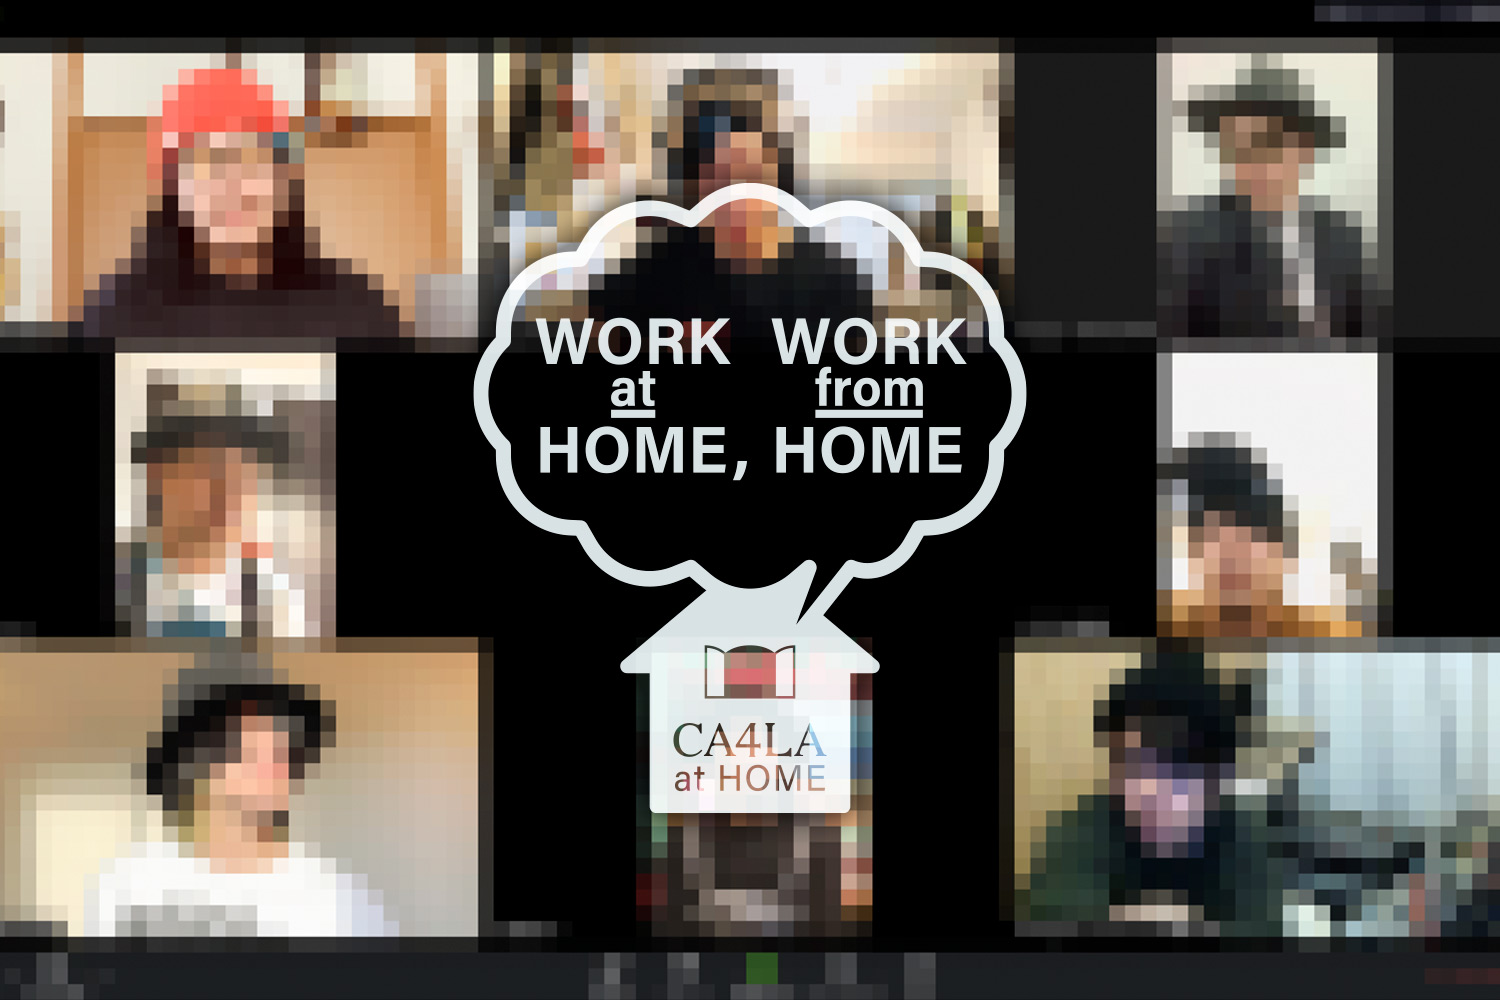 CA4LA at HOME「WORK at HOME, WORK from HOME」